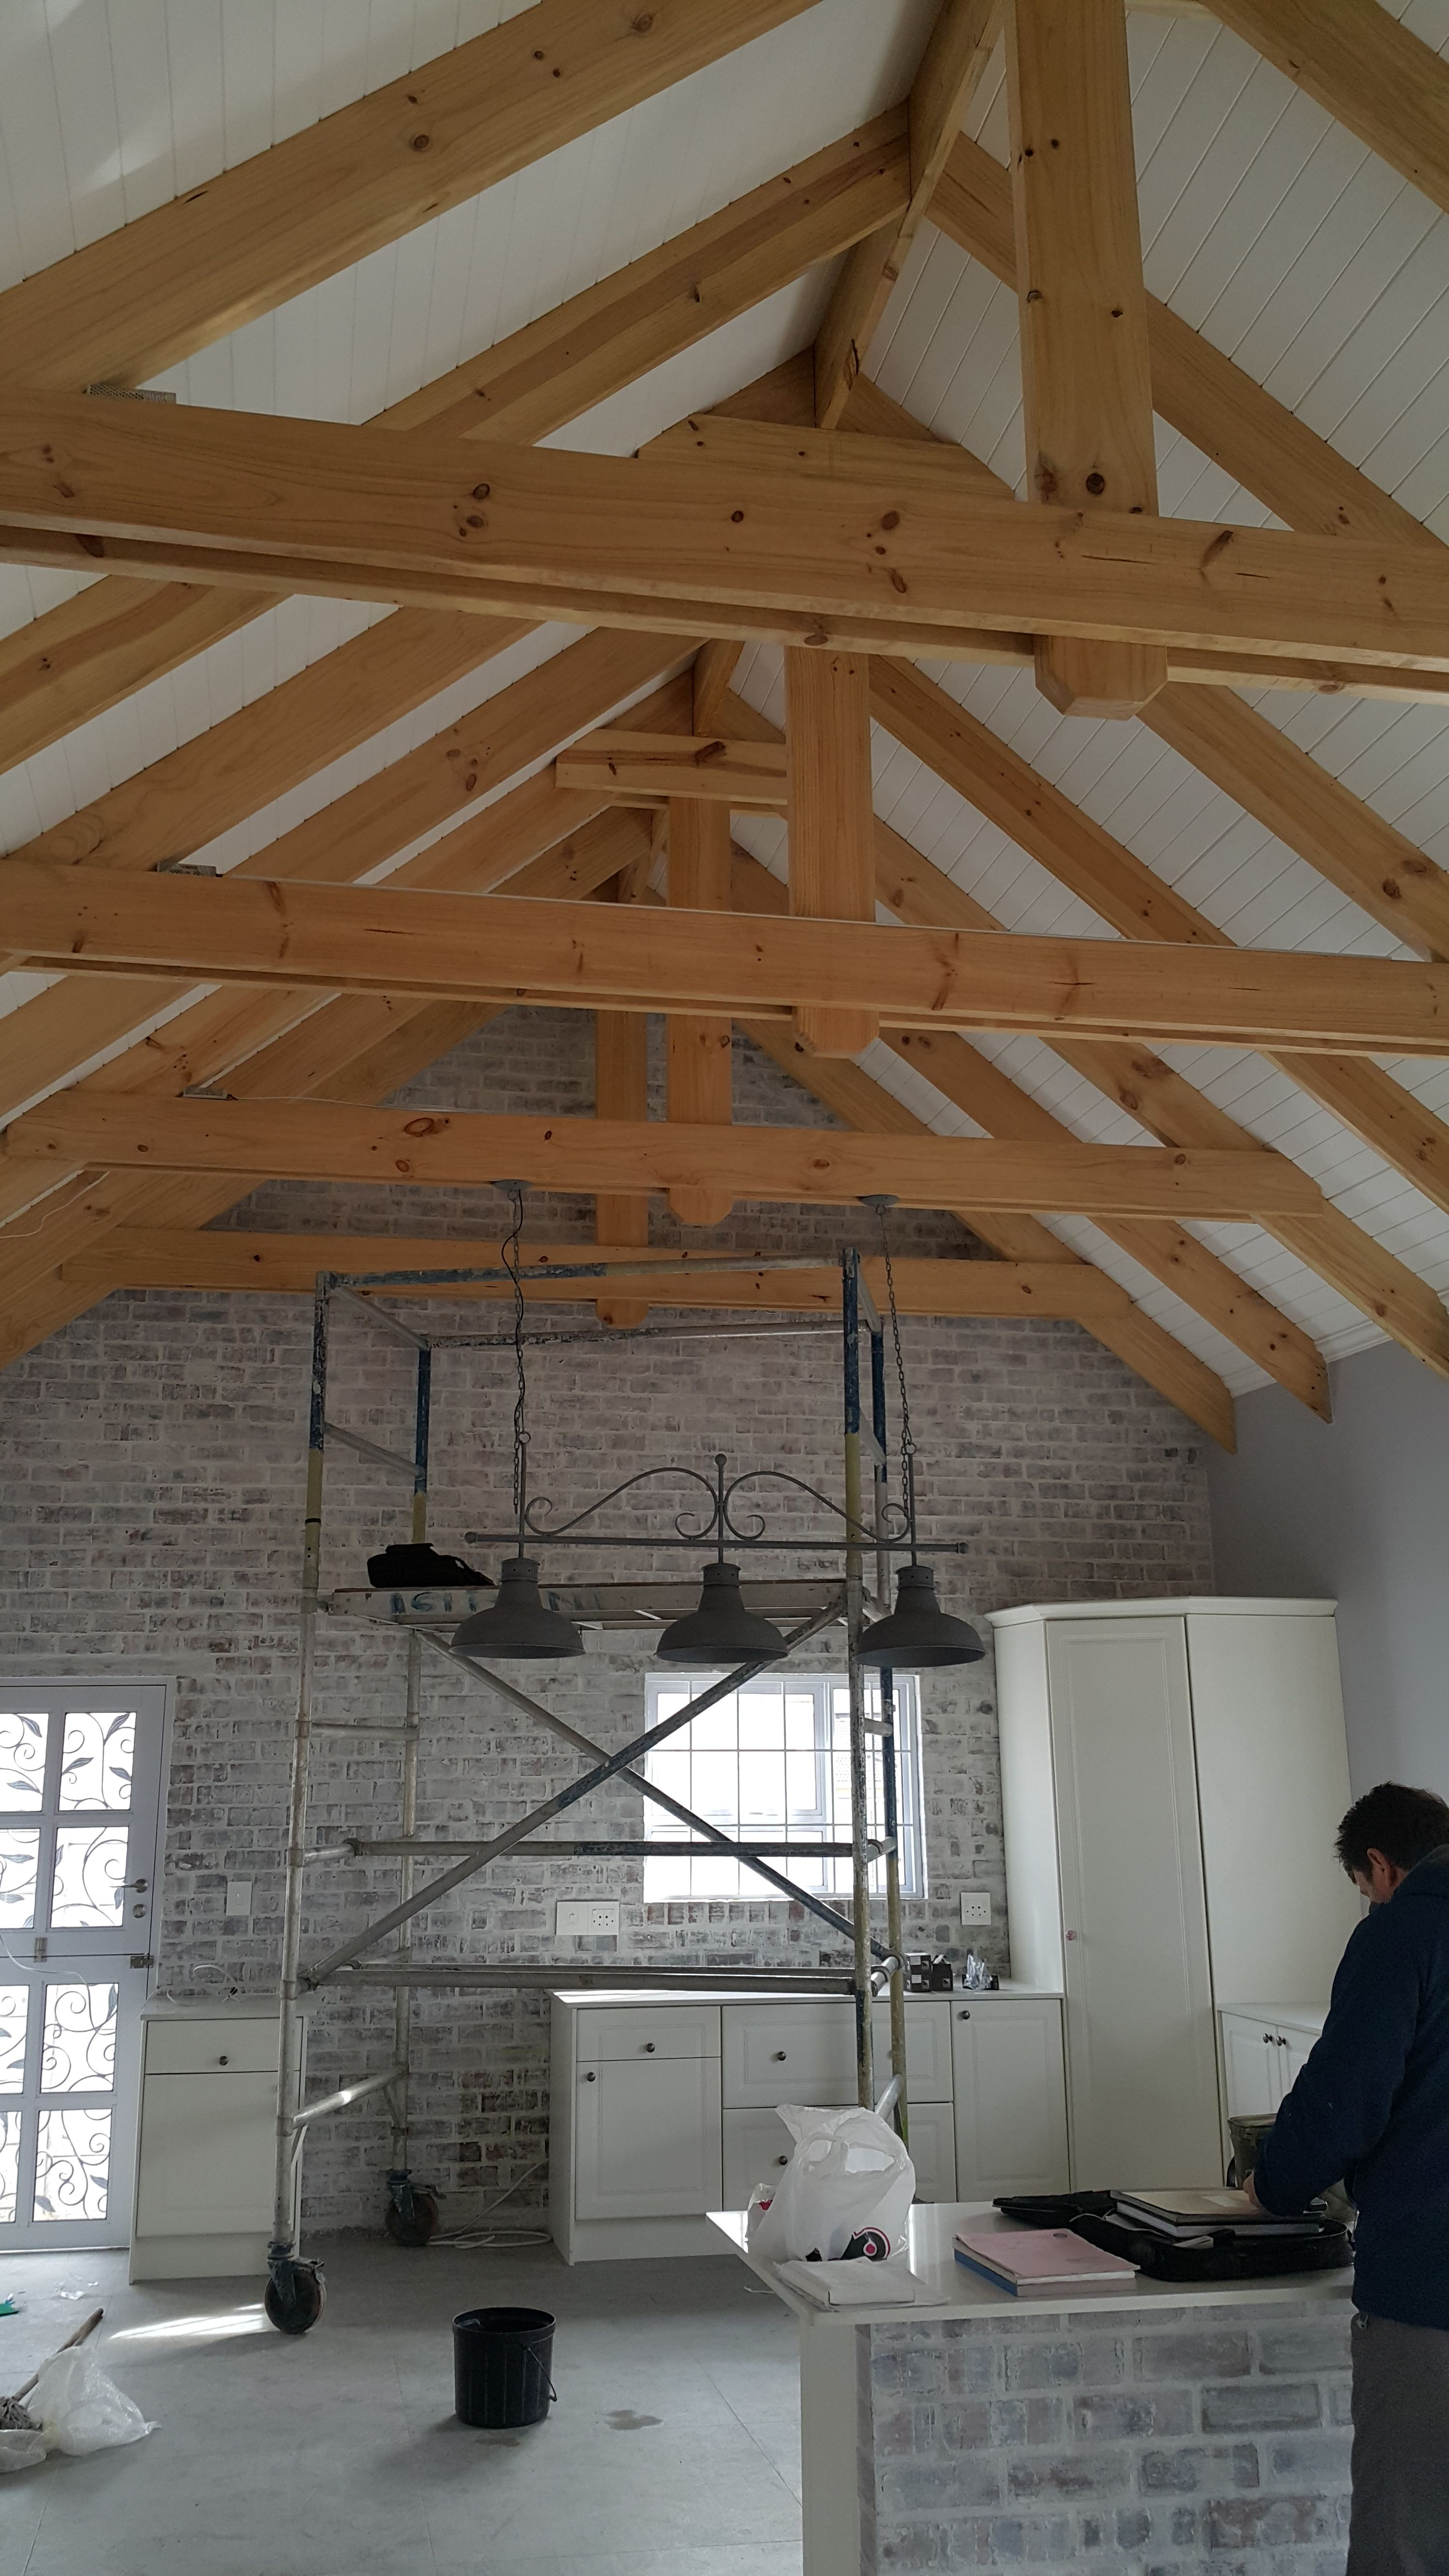 Another stunning ceiling of an exposed ceiling fitted with heat gain in residential homes is largely through the roof structure insulated ceilings retard heattransfer into the living areas dailygadgetfo Images